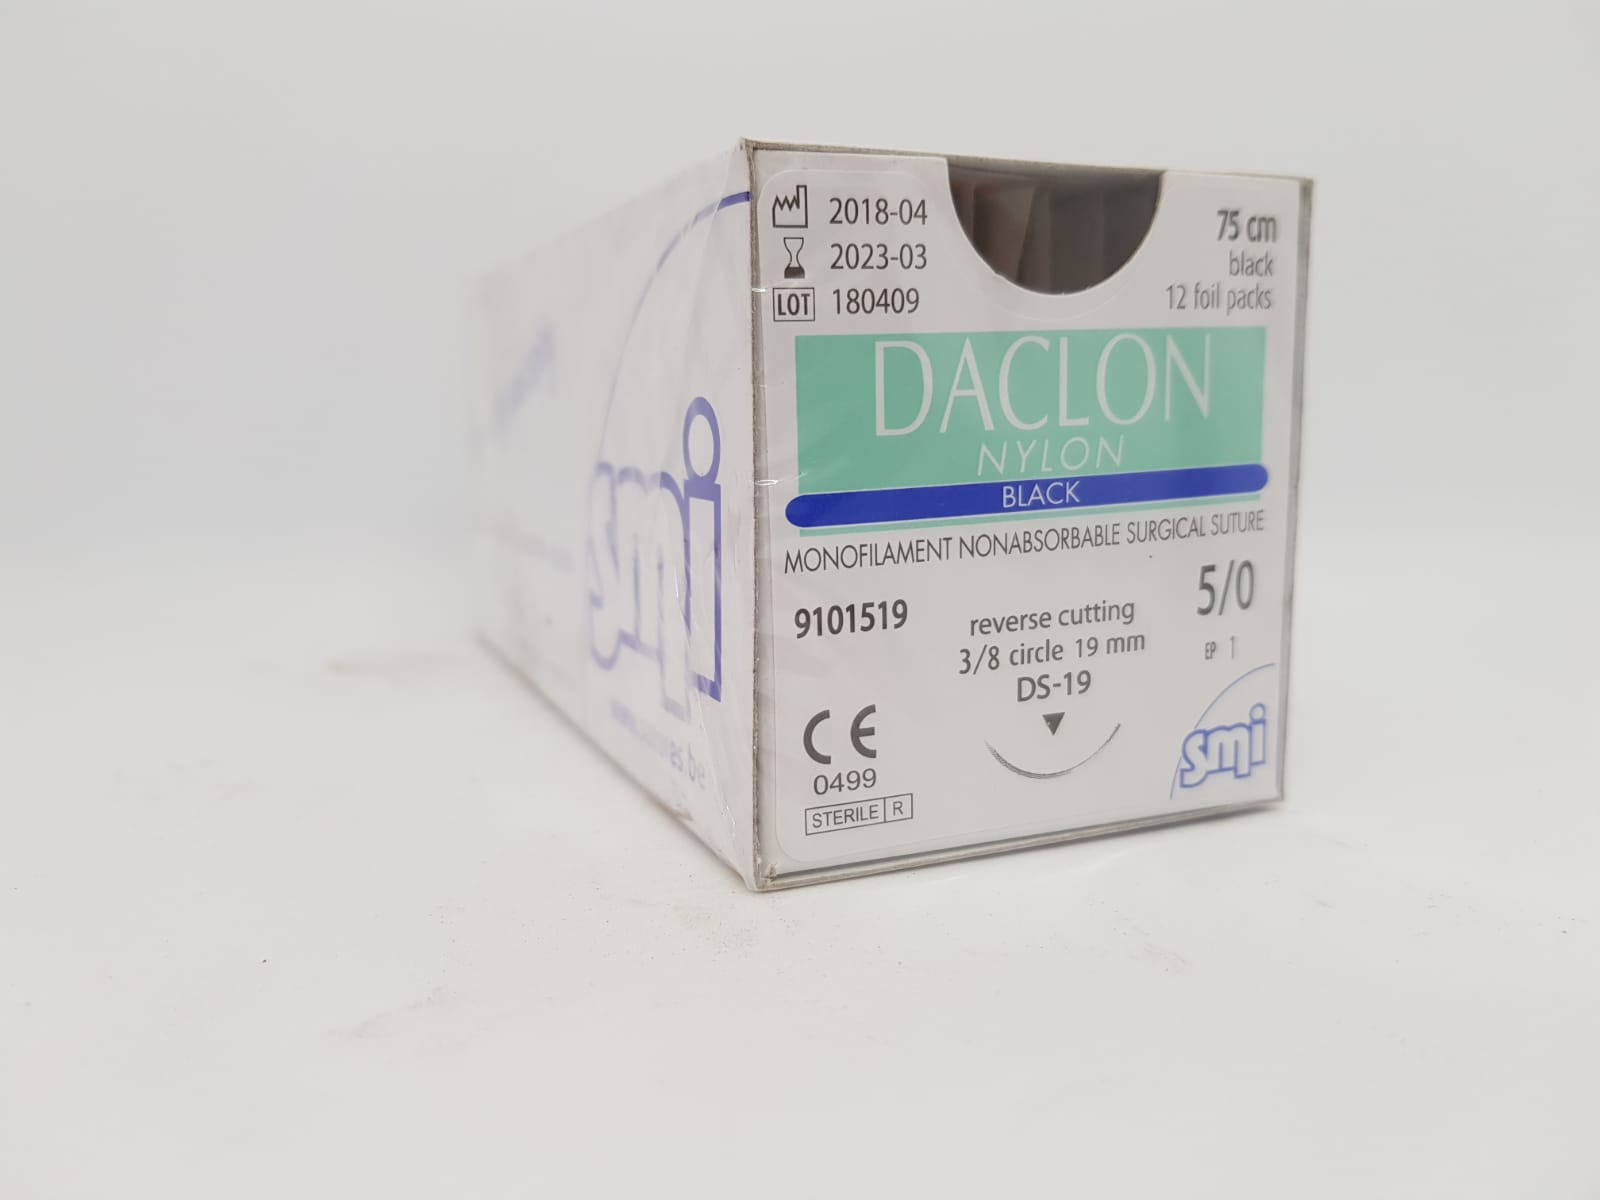 SUTURE DACLON 5/0 CIRC DS19 75CM BLACK, BOX 12